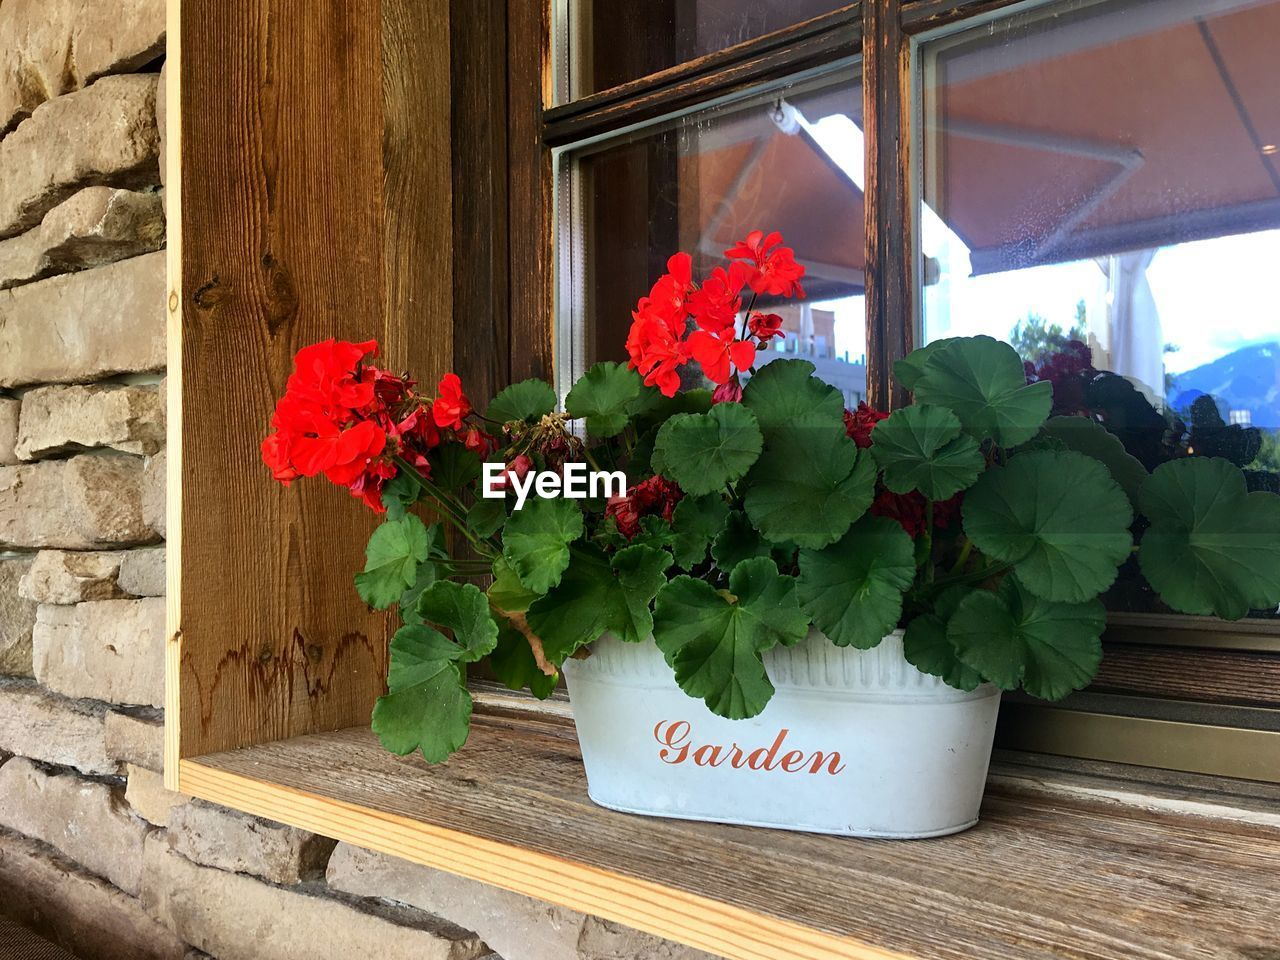 flowering plant, flower, plant, freshness, growth, text, beauty in nature, potted plant, nature, fragility, vulnerability, no people, window, day, communication, plant part, close-up, leaf, western script, wood - material, outdoors, flower head, flower pot, window box